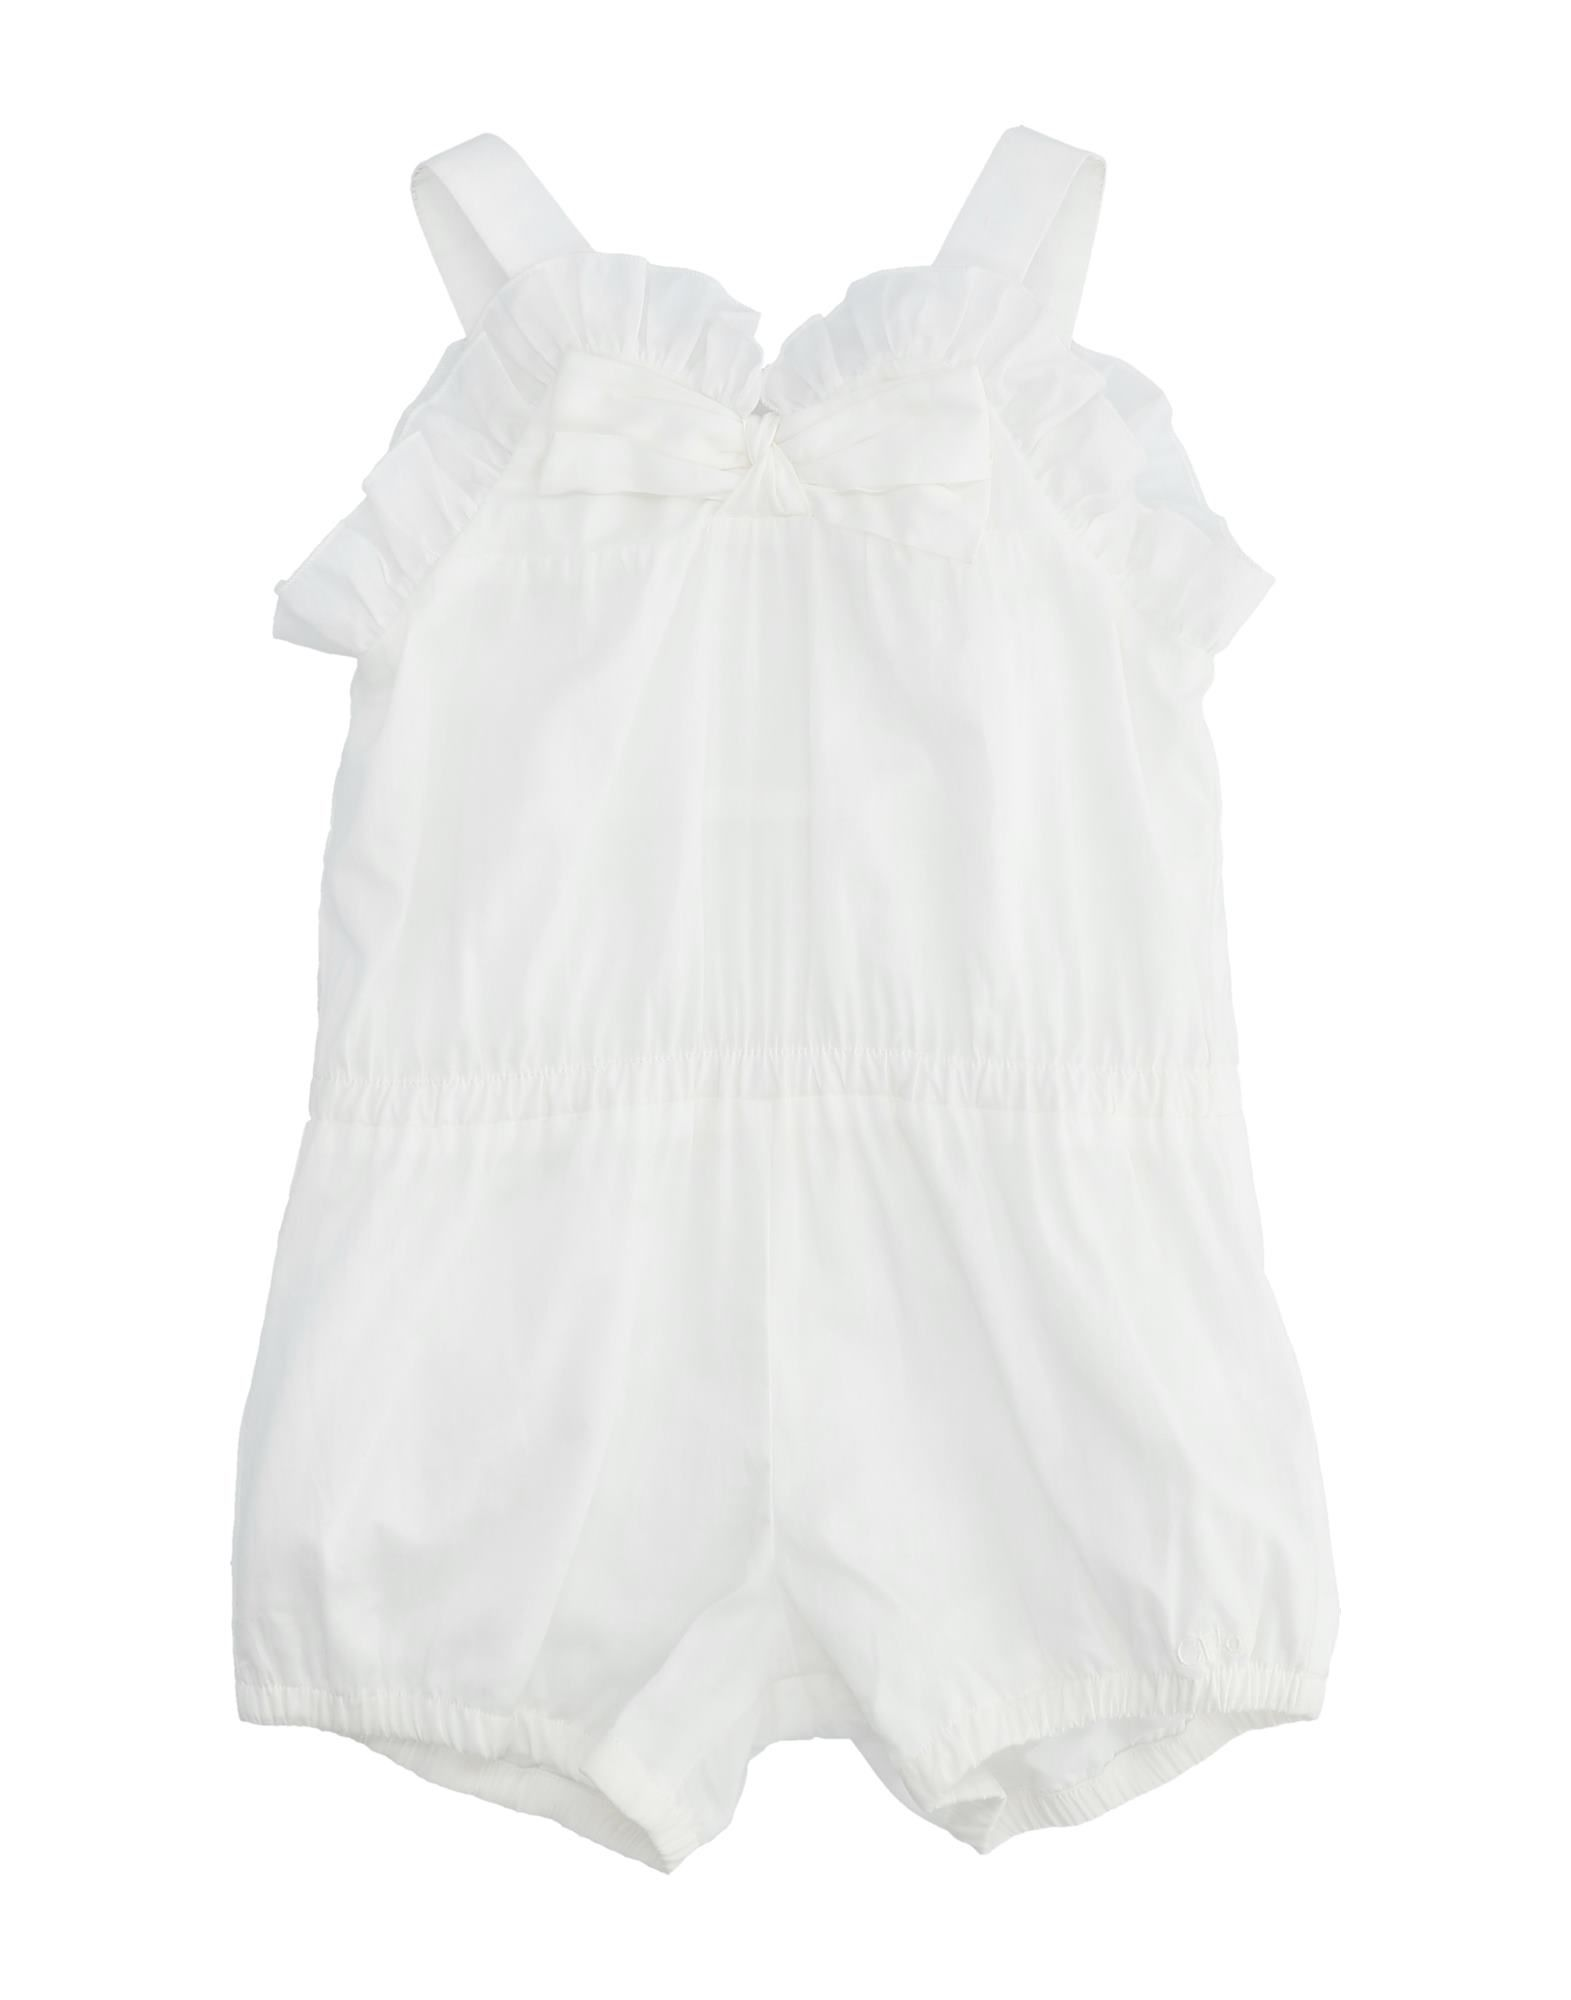 CHLOÉ Baby overalls. plain weave, bow-detailed, basic solid color, round collar, sleeveless, zipper closure, side closure, wash at 30degree c, dry cleanable, iron at 150degree c max, do not bleach, do not tumble dry. 100% Cotton